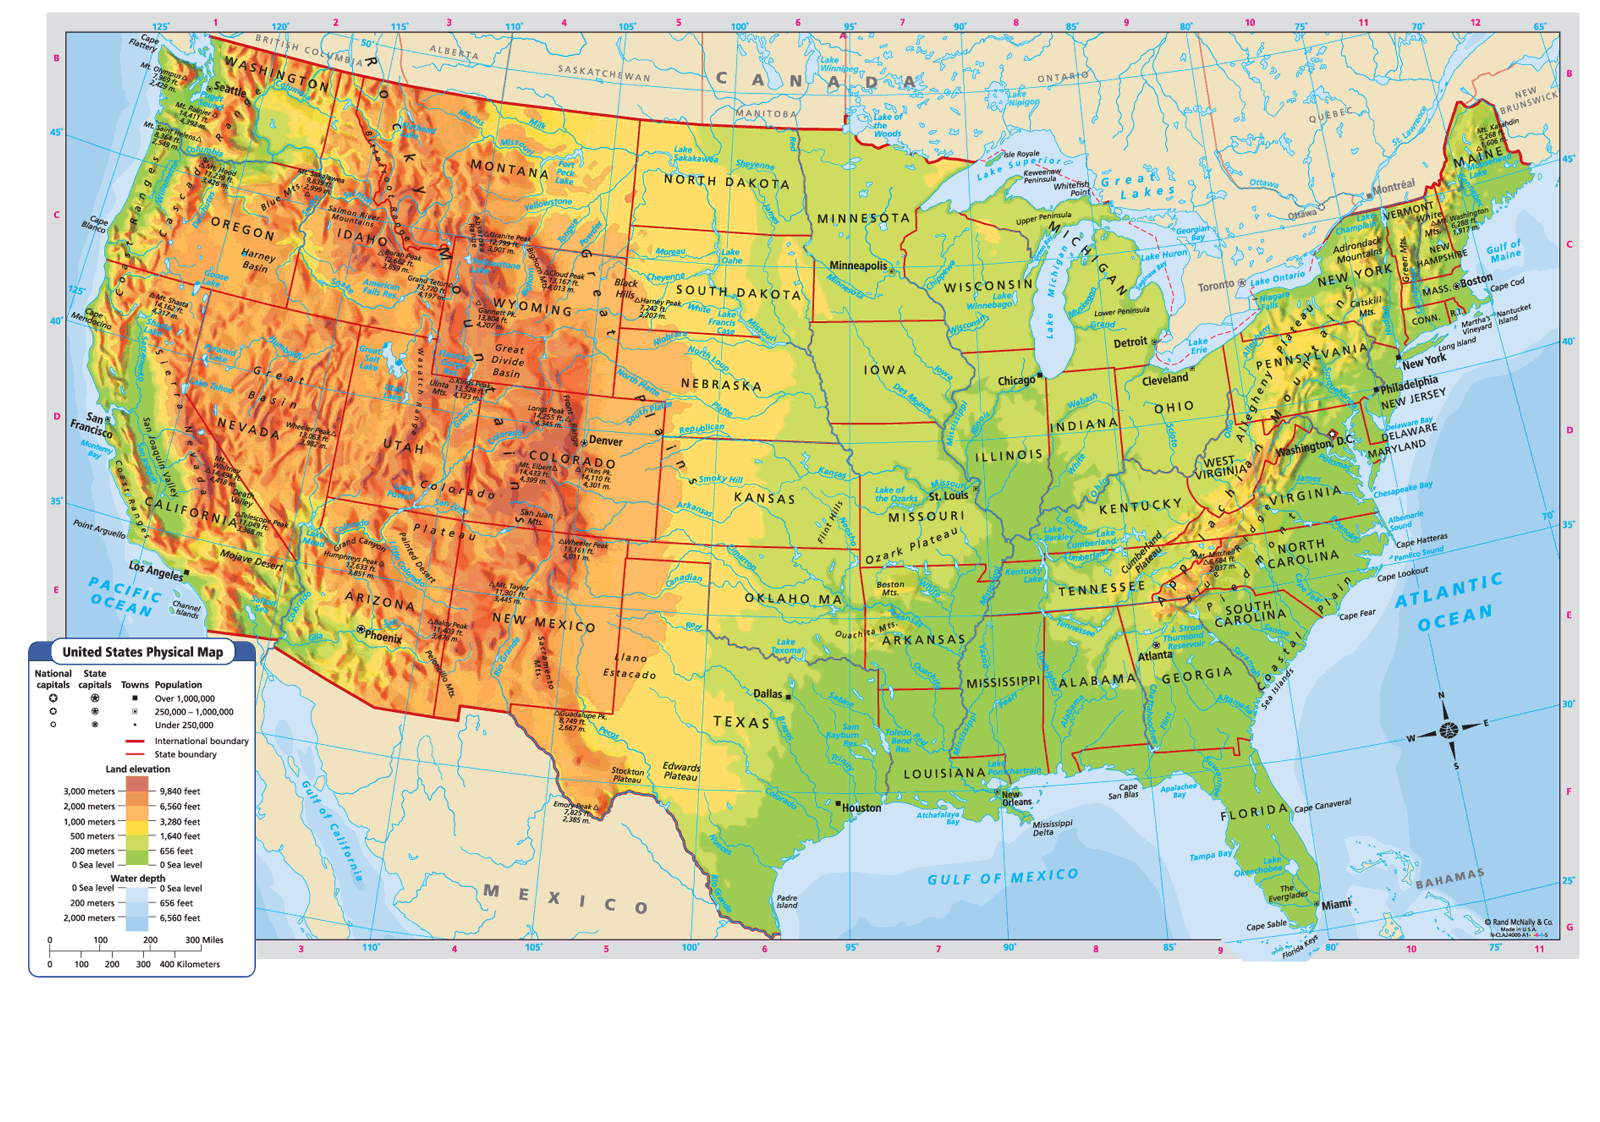 United States Map Topographic.United States Physical Map Favorite Places Spaces Topographic